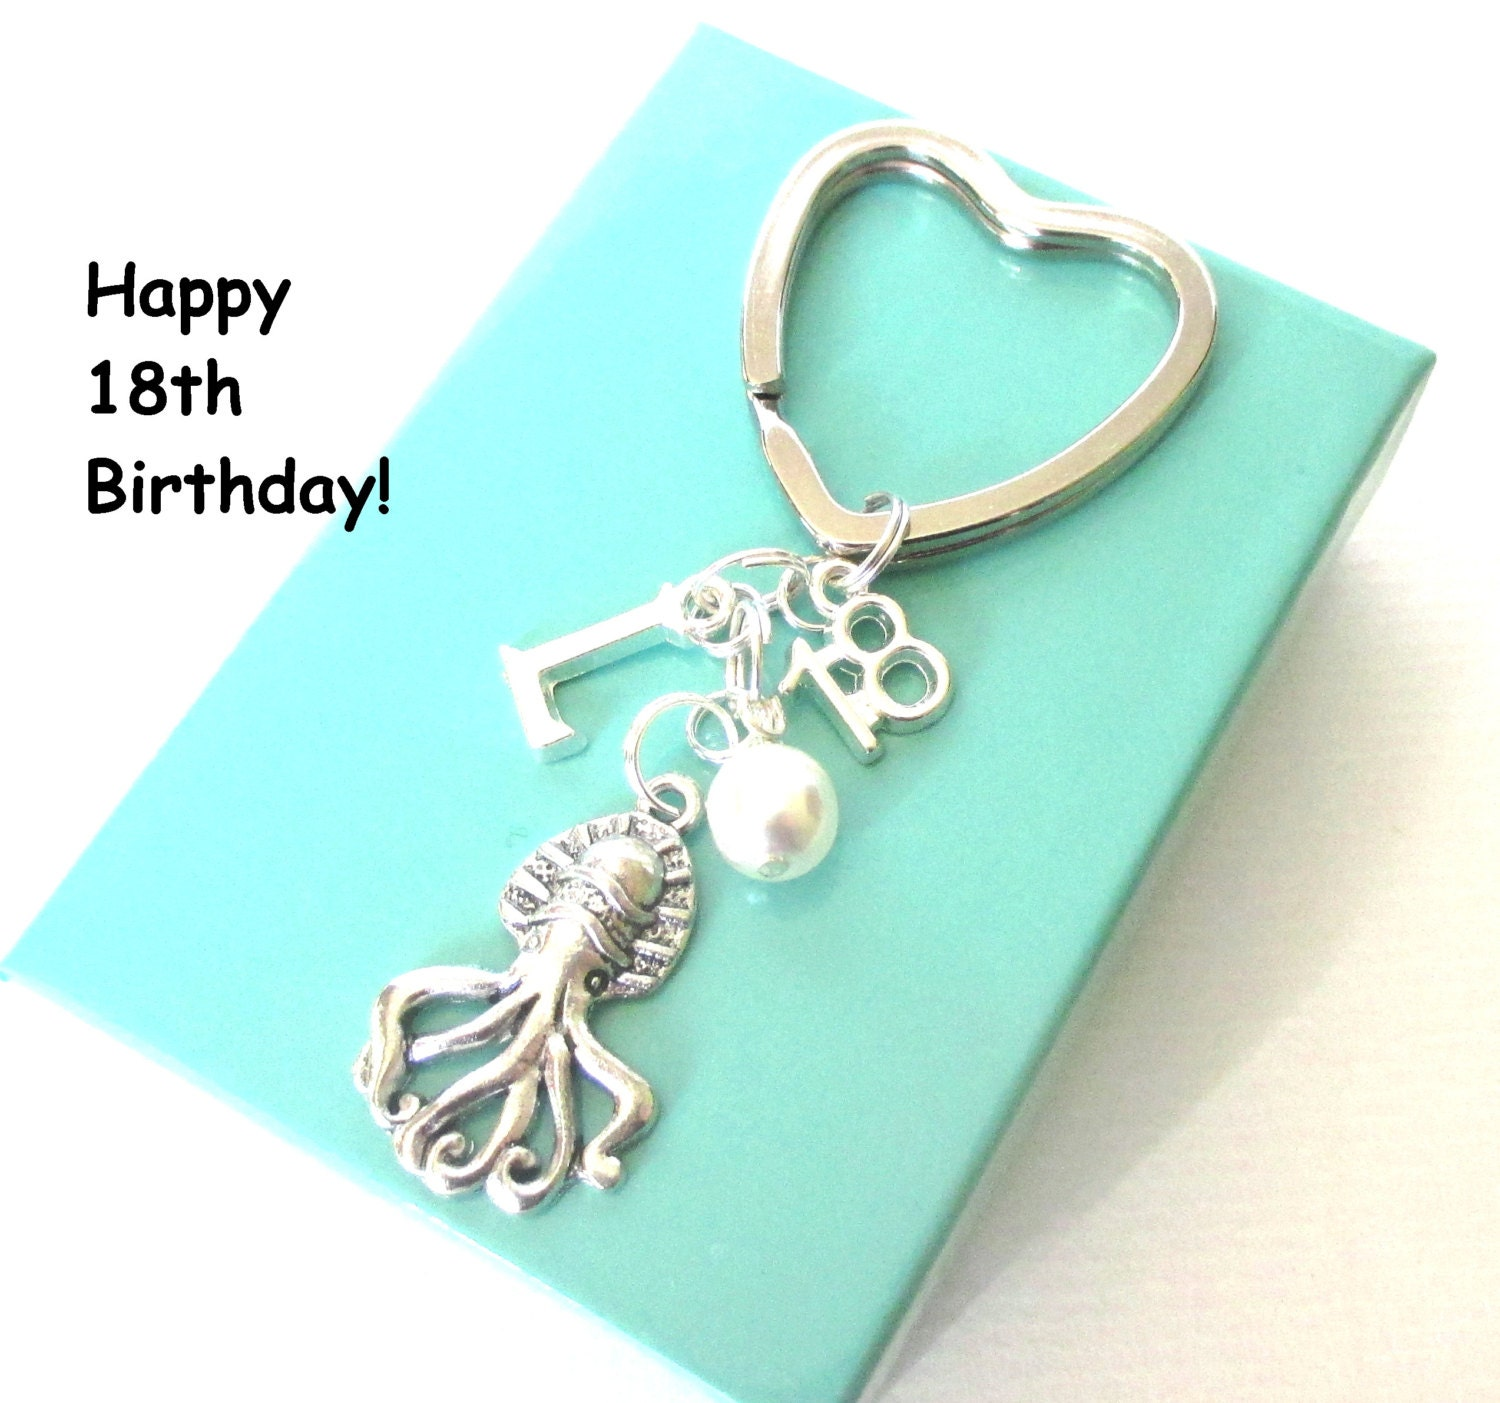 Keychains Circuit Board Glass Pendant Photo Necklace Keychain 18th Gift Octopus Keyring Personalised Birthday With